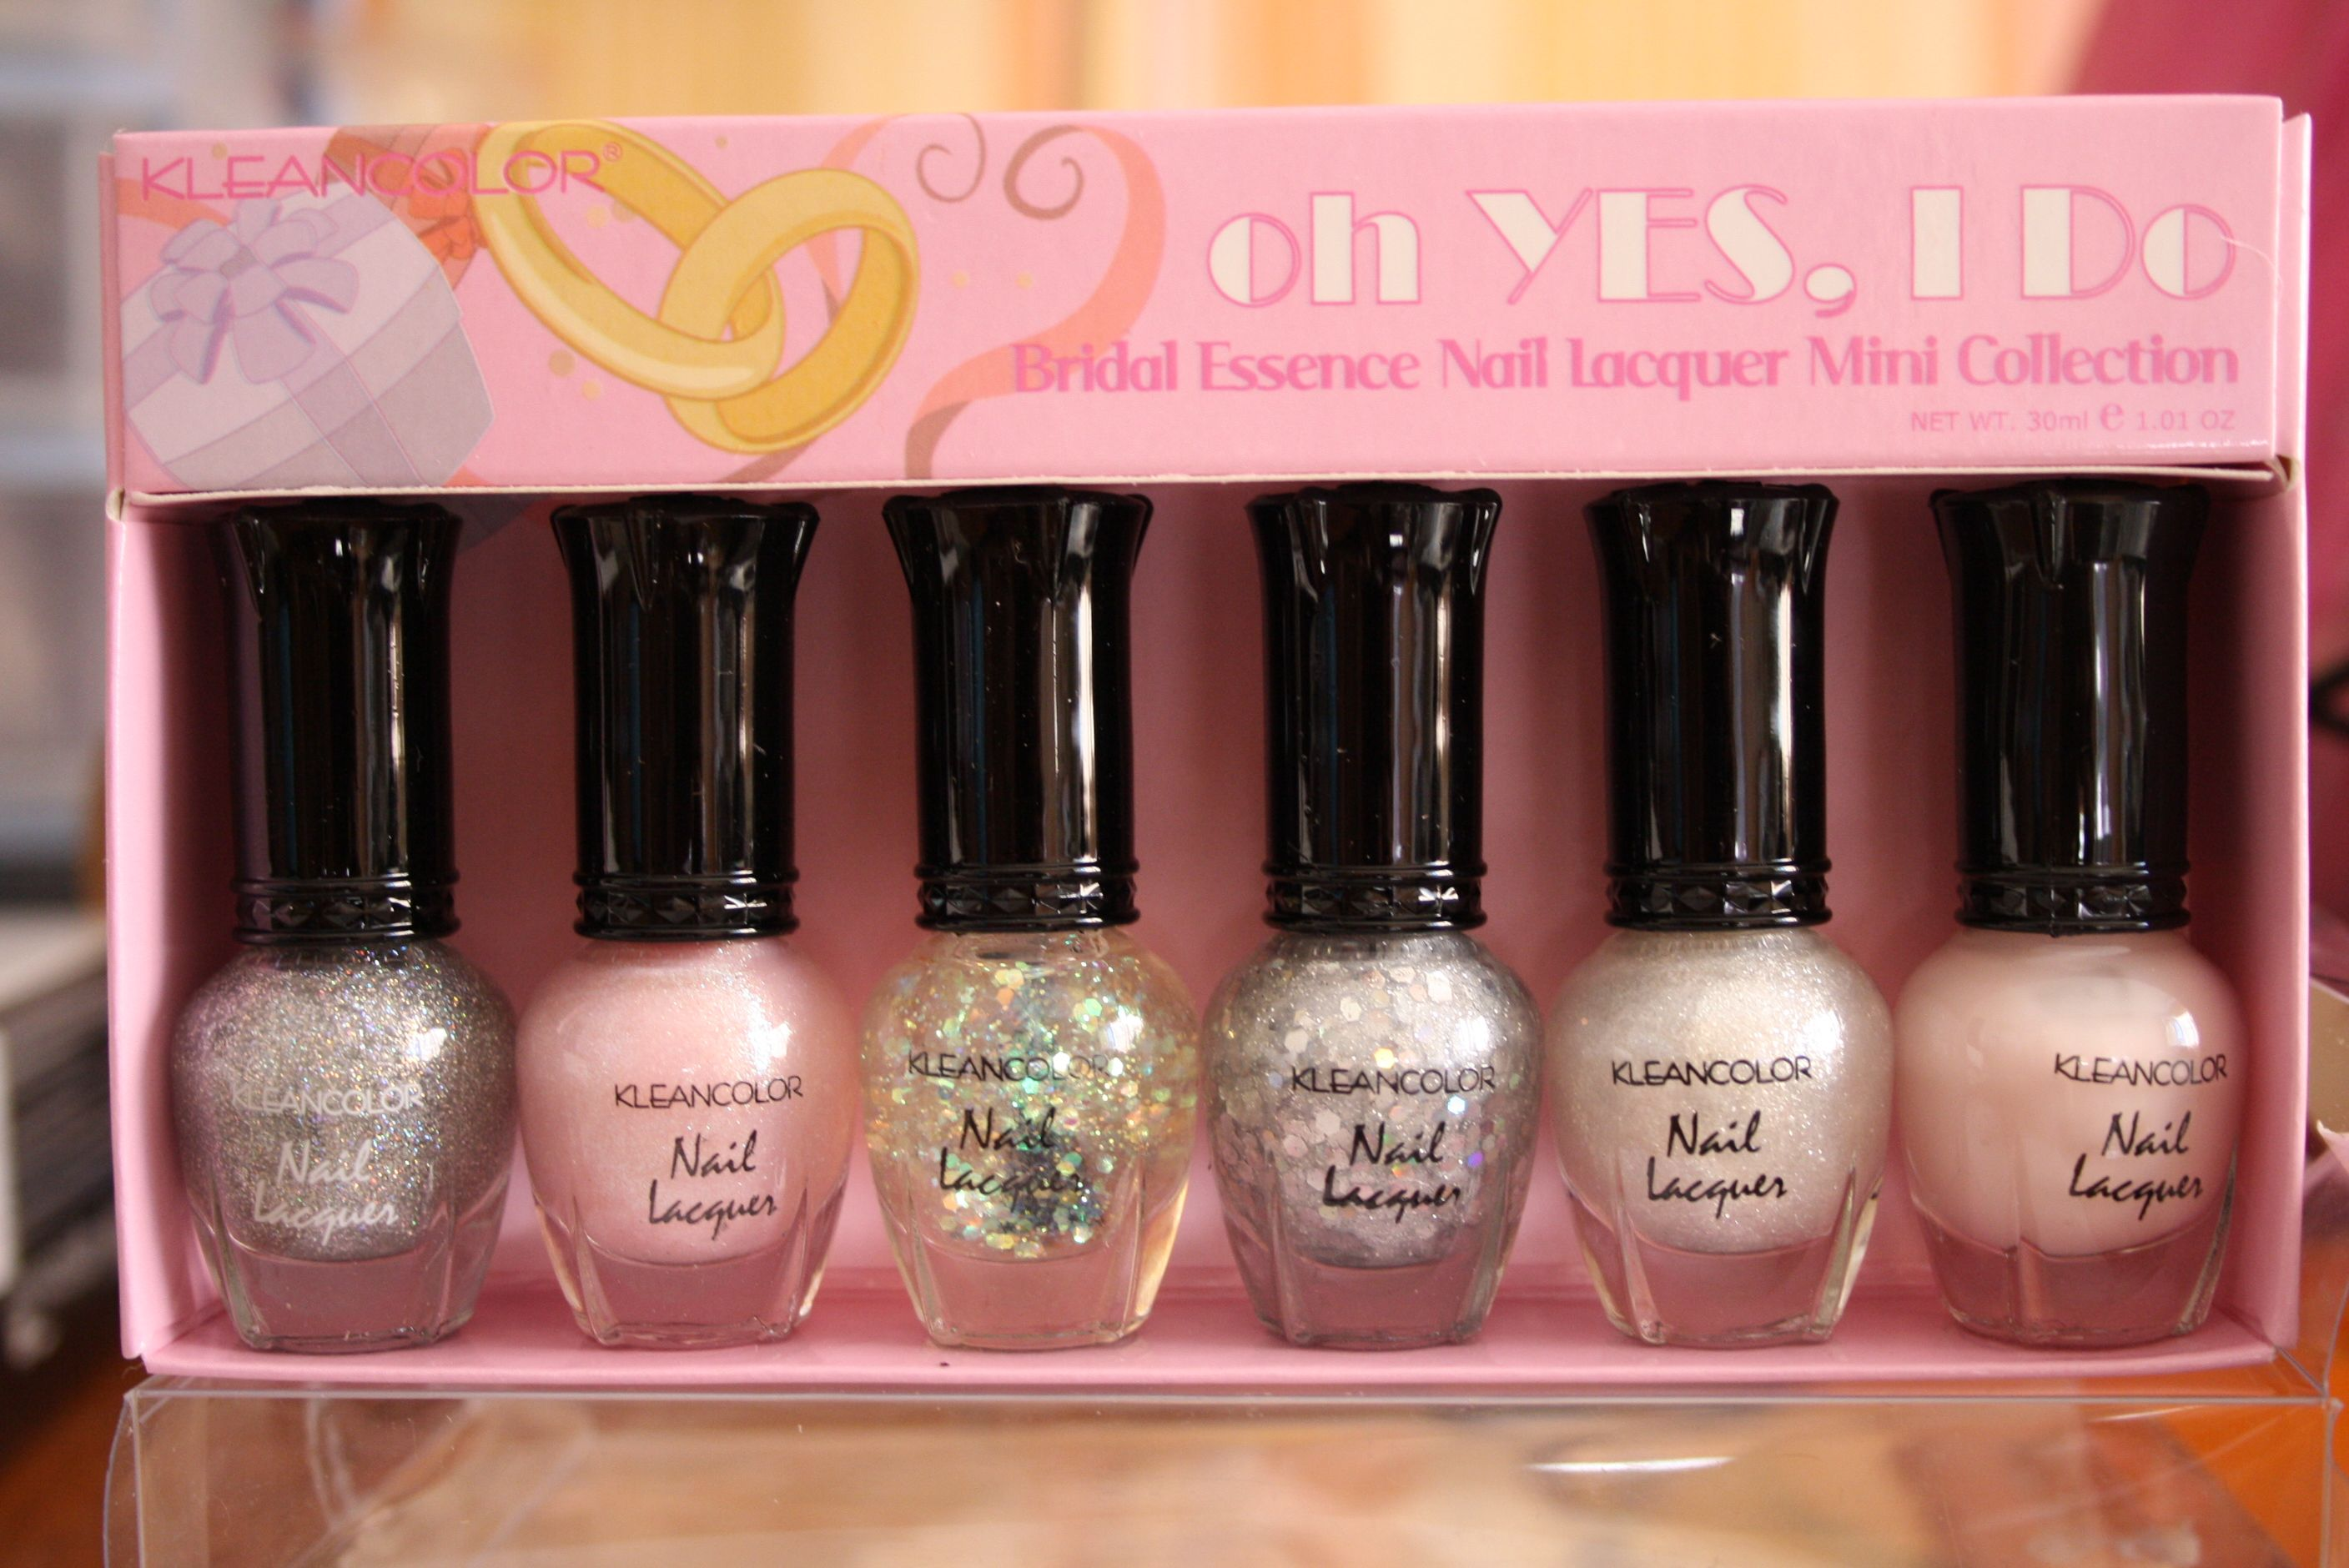 KLEANCOLOR Nail Lacquer Mini Collection - oh YES, I Do Bridal ...